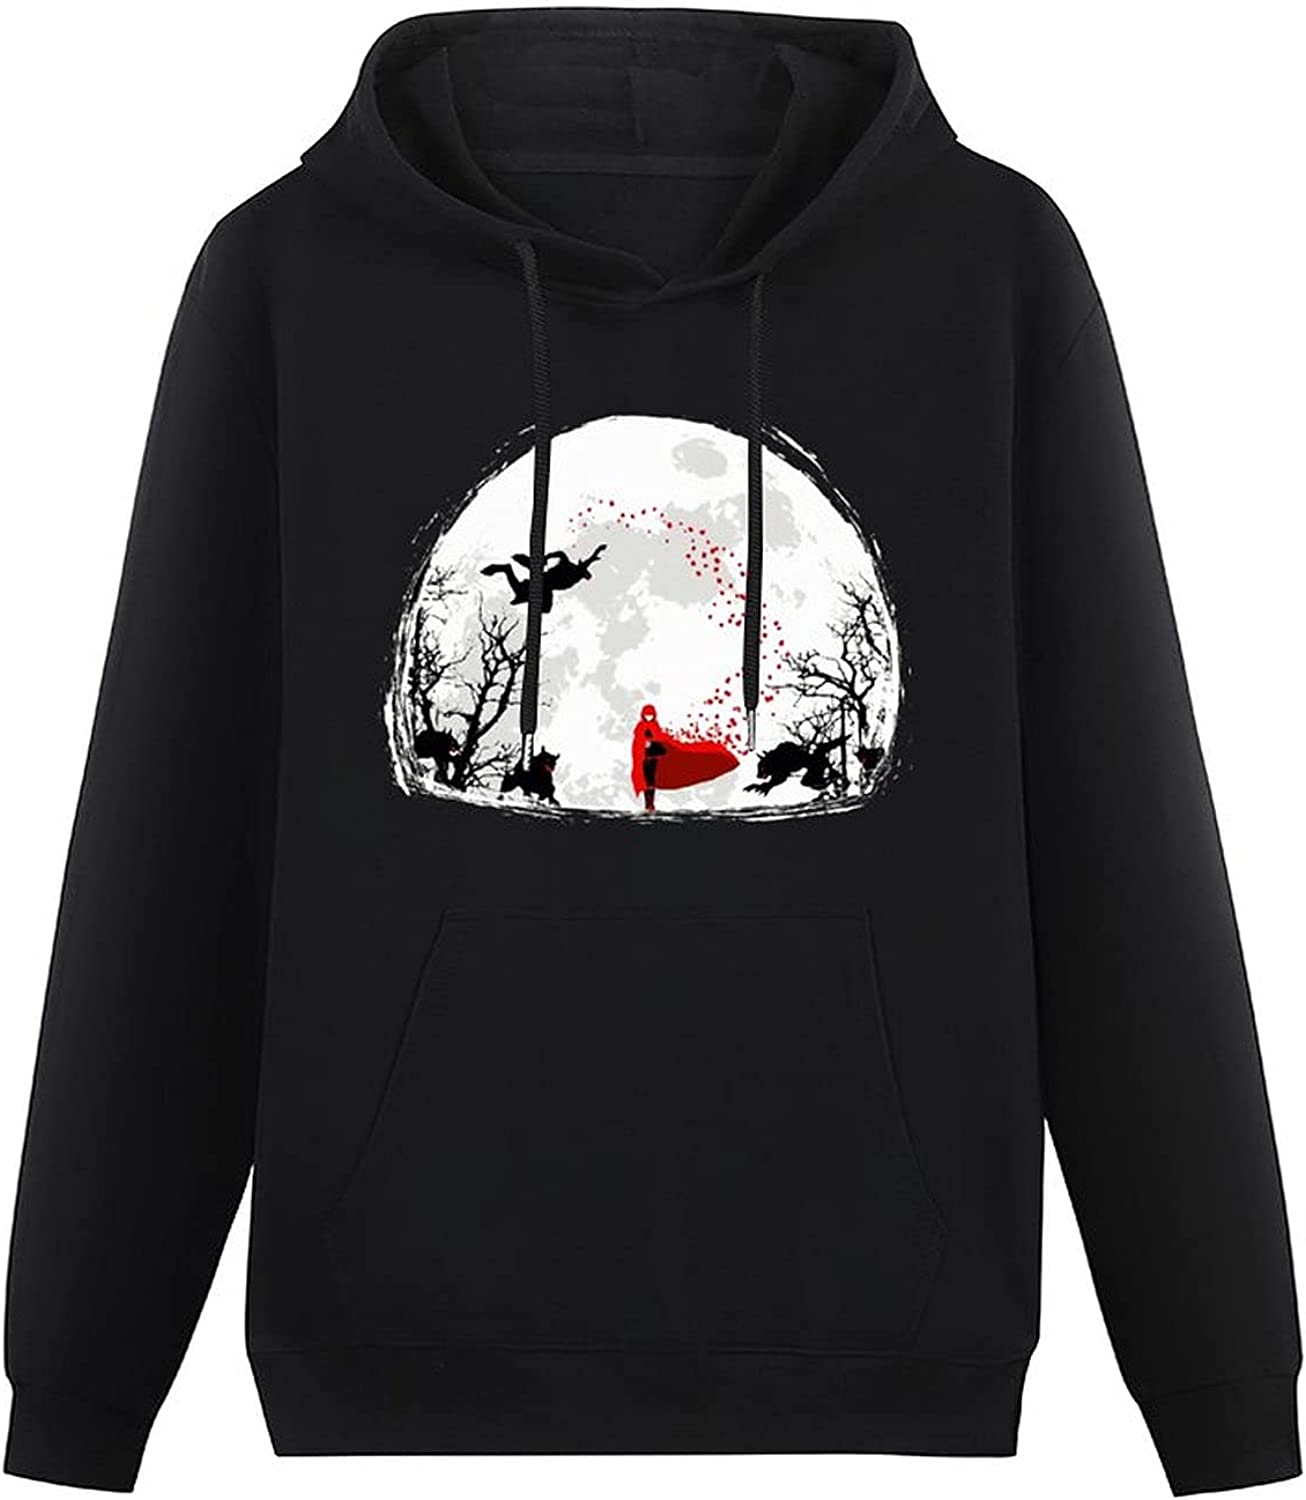 RWBY Teen Hooded Sweatshirt,Simplicity Pullover Hoodie Sweater with Pockets for Boys Girls